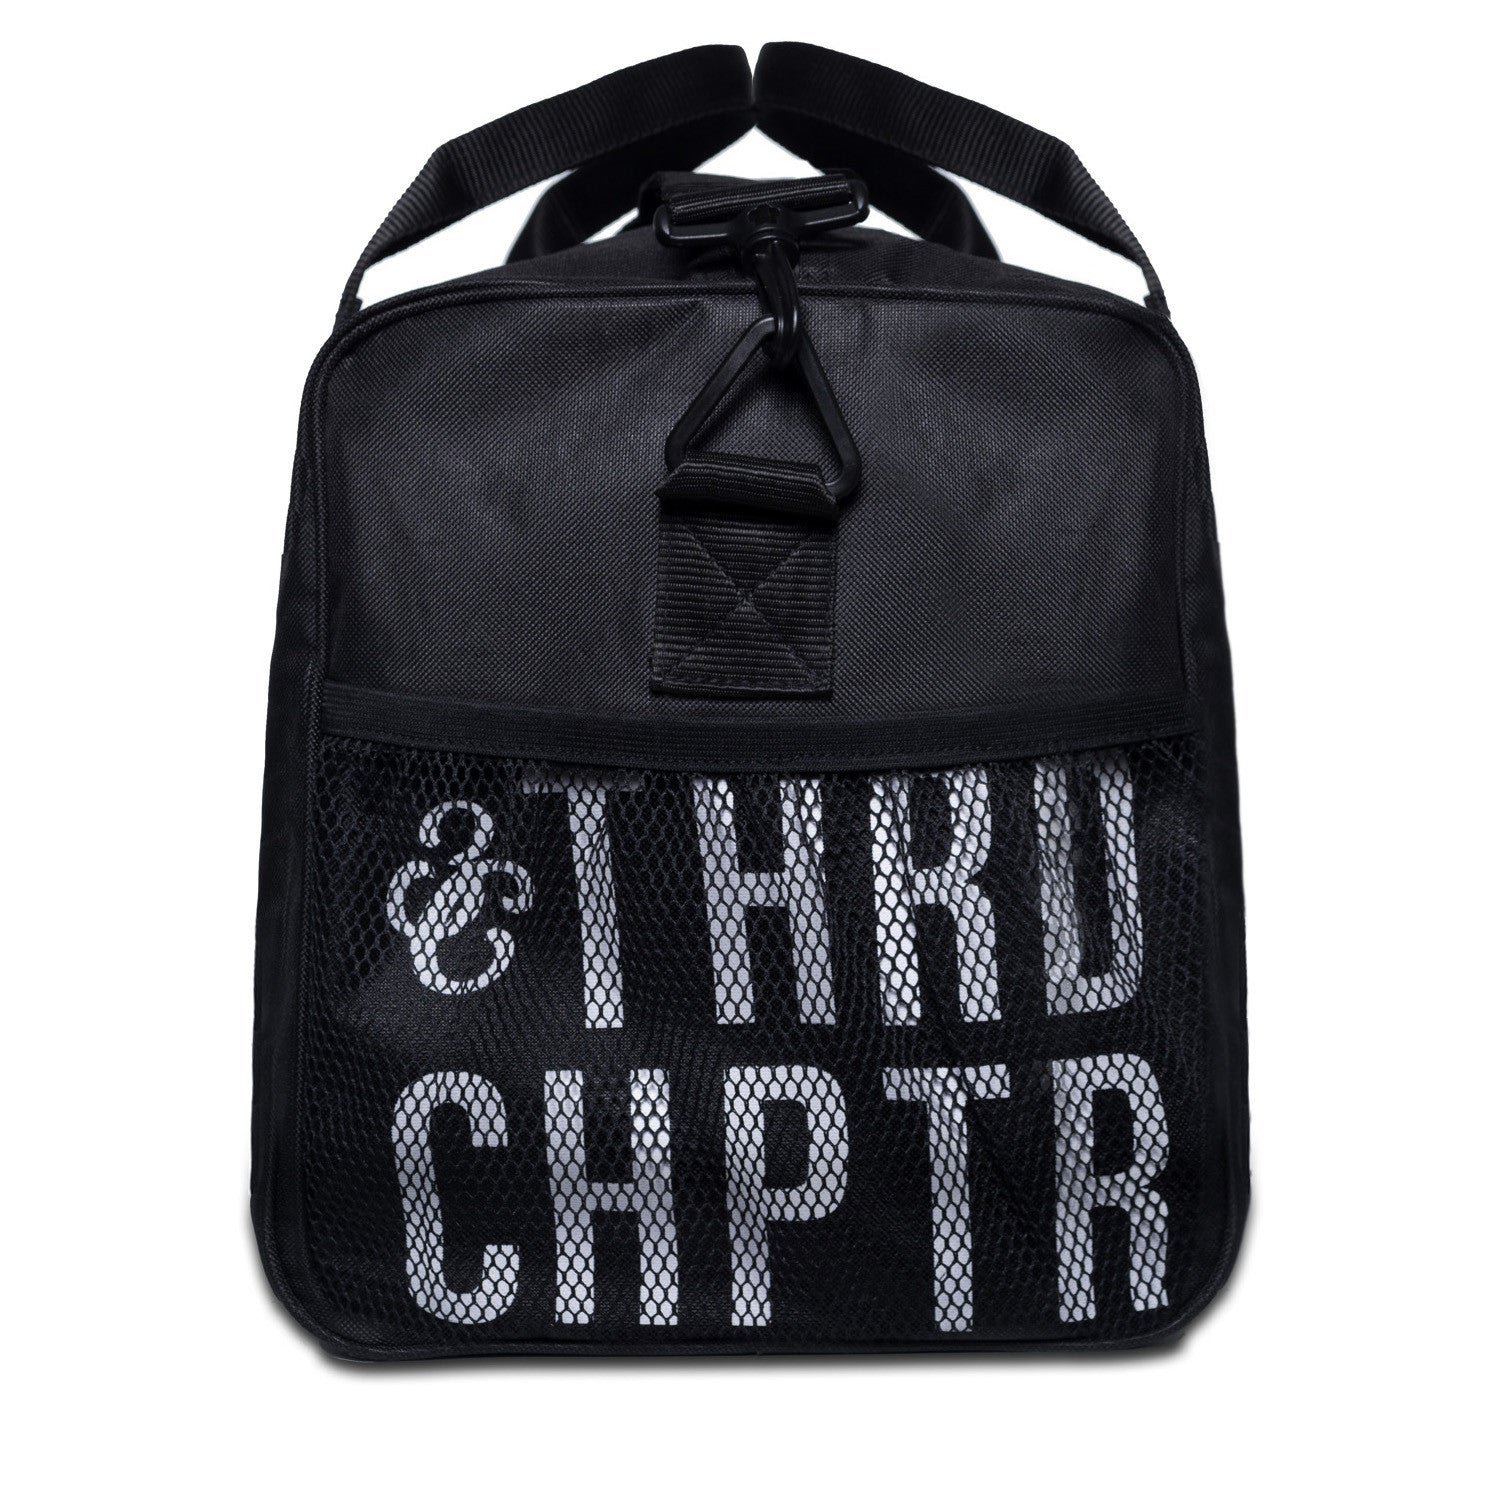 S.D Duffle Bag (Smell Proof) - 3rdchapter - 3